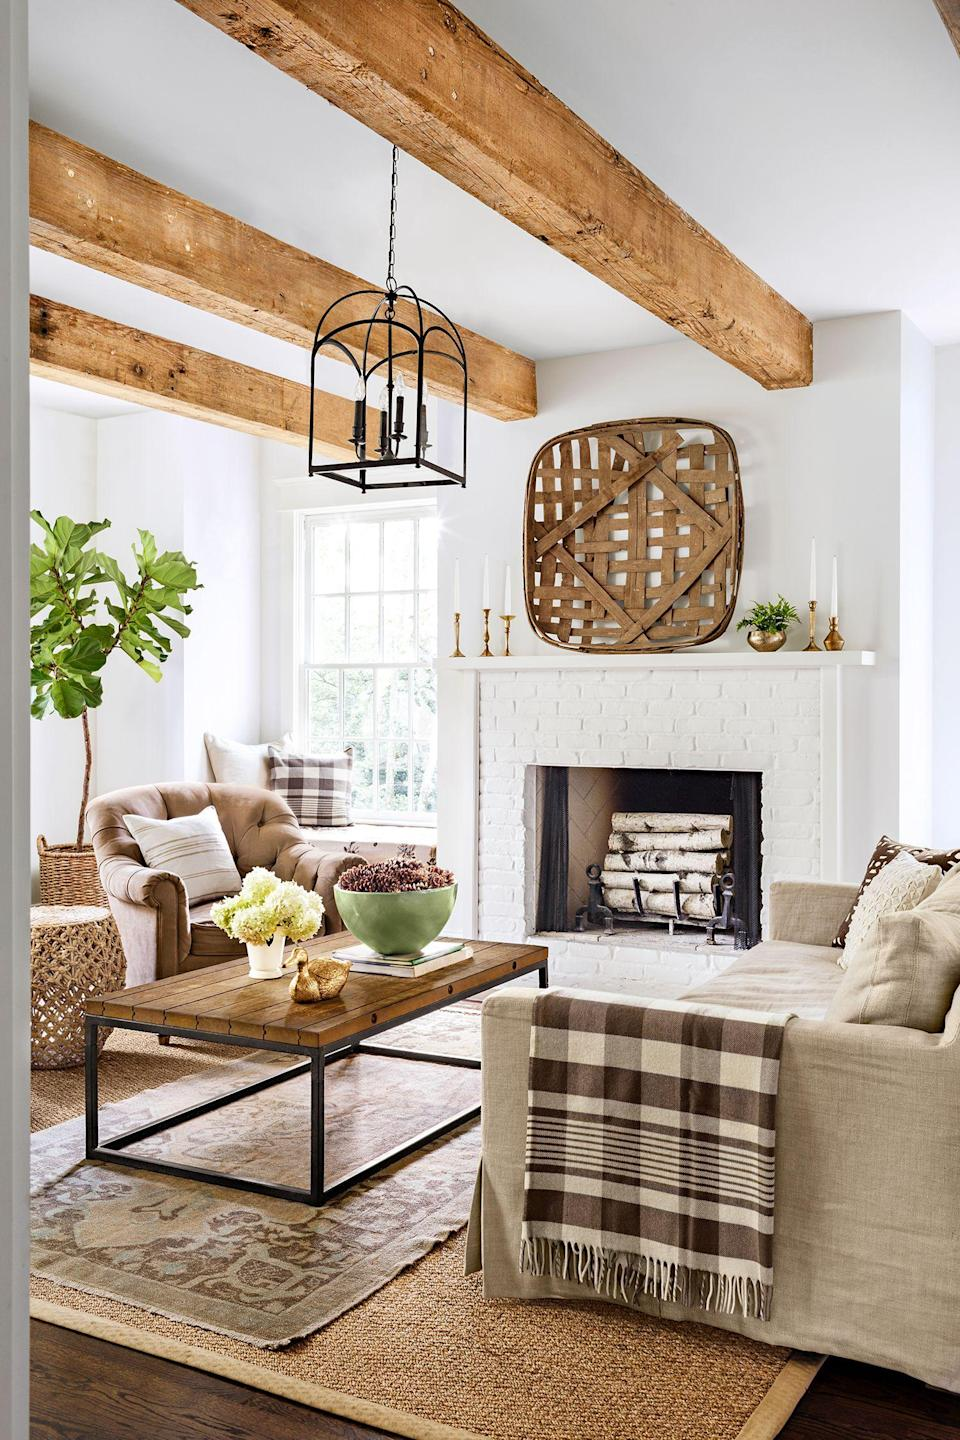 """<p>Come fall, you might be inclined to decorate with layers of texture, transition your home's color palette from energetic hues to earth tones, and even <a href=""""https://www.goodhousekeeping.com/home/g30224103/11-relaxing-and-cozy-reading-corner-ideas/"""" rel=""""nofollow noopener"""" target=""""_blank"""" data-ylk=""""slk:carve out a cozy nook"""" class=""""link rapid-noclick-resp"""">carve out a cozy nook</a> that's perfect for lounging. Autumn presents an opportunity to make the most of more time spent indoors, which means finding ways to <a href=""""https://www.goodhousekeeping.com/home/decorating-ideas/g2716/fall-decorations/"""" rel=""""nofollow noopener"""" target=""""_blank"""" data-ylk=""""slk:make your home more cozy"""" class=""""link rapid-noclick-resp"""">make your home more cozy</a> and welcoming. Believe it or not, this doesn't mean you have to blow your budget. One of the best places to start? Your living room mantel. </p><p>Fall mantel decorating is all about being creative, whether you choose to bring in the outdoors by incorporating foliage or stick to classic accessories like <a href=""""https://www.goodhousekeeping.com/holidays/halloween-ideas/g1714/no-carve-pumpkin-decorating/"""" rel=""""nofollow noopener"""" target=""""_blank"""" data-ylk=""""slk:vibrant pumpkins"""" class=""""link rapid-noclick-resp"""">vibrant pumpkins</a> and candles. Browse some of our favorite fall mantel decor ideas that showcase the beauty of the season. </p>"""